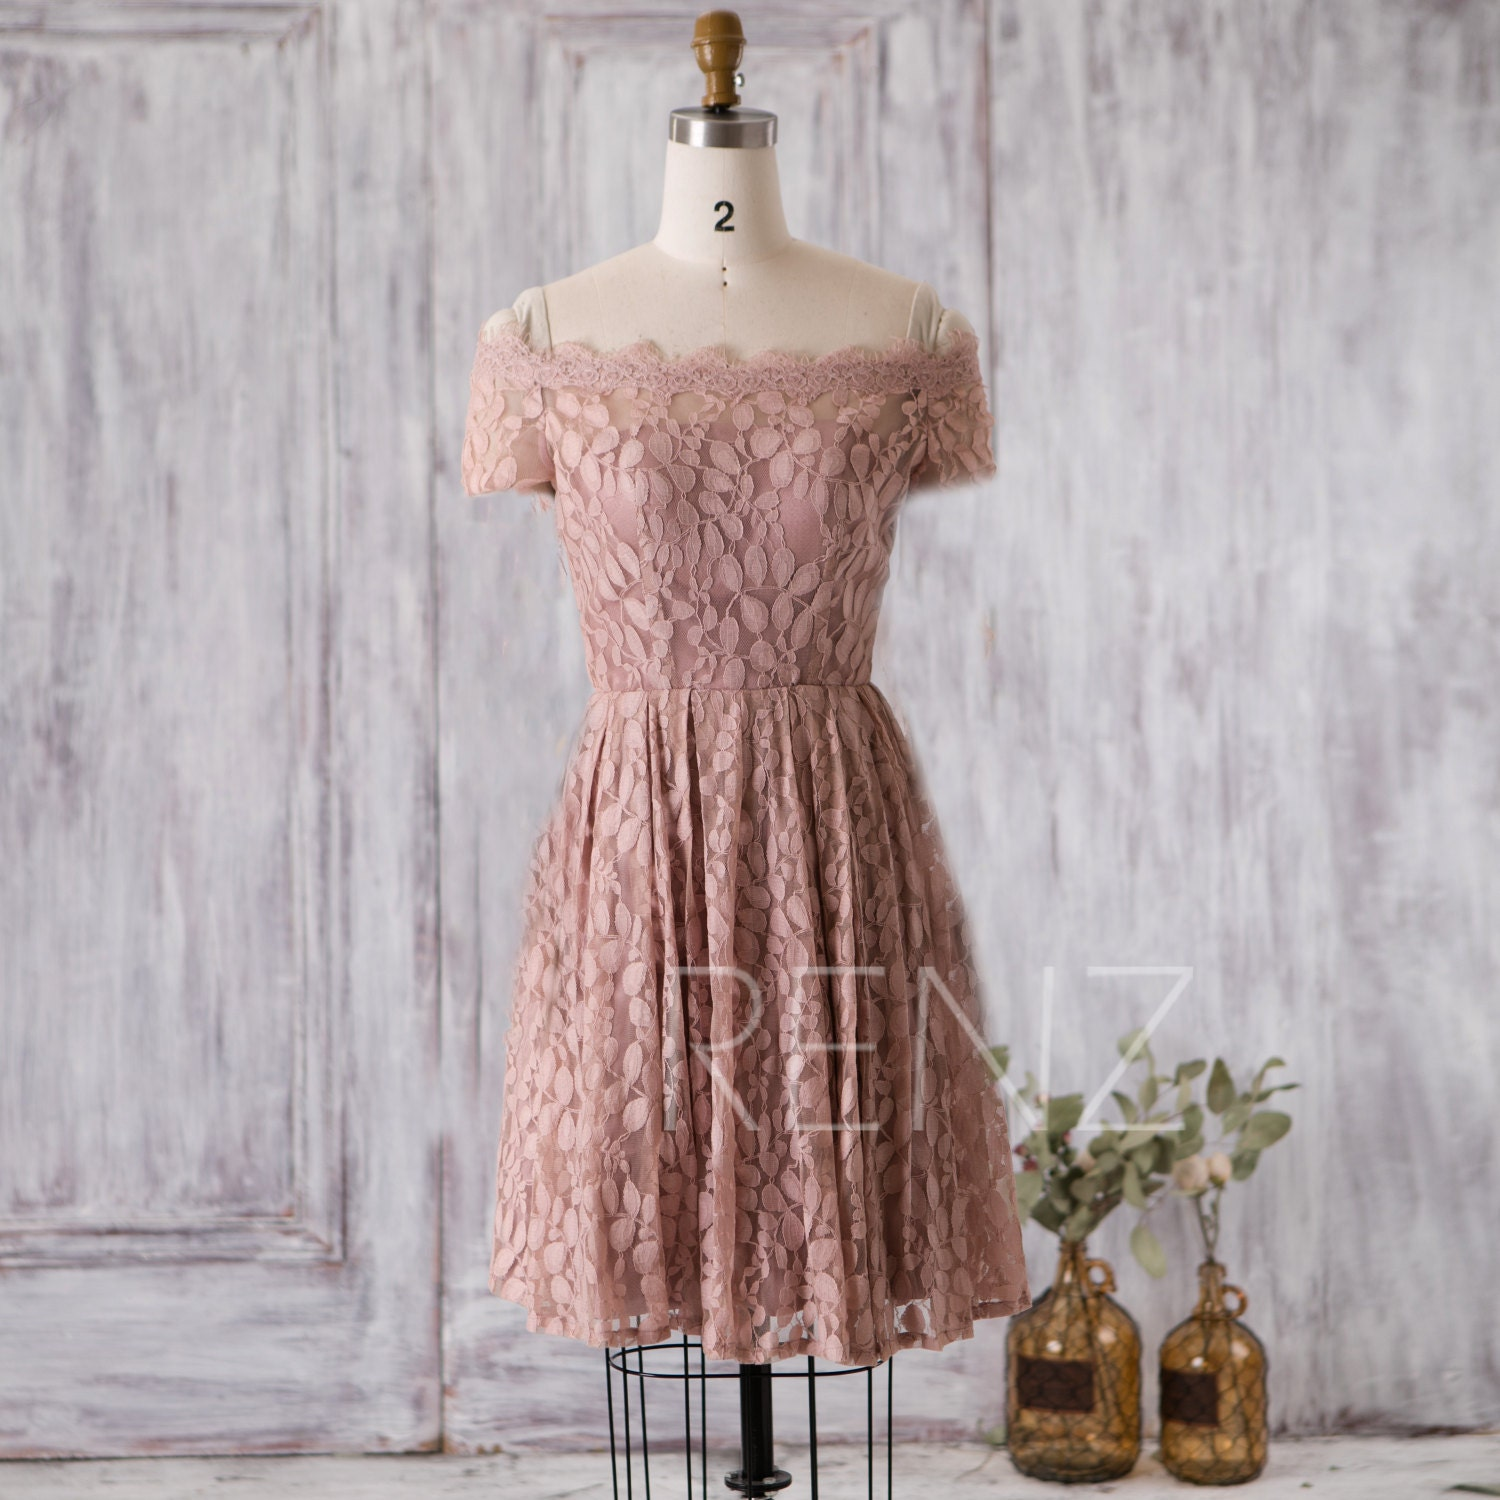 4b3f2d7ab76a85 Bridesmaid Dress Dusty Rose Lace Dress Wedding Dress Off the